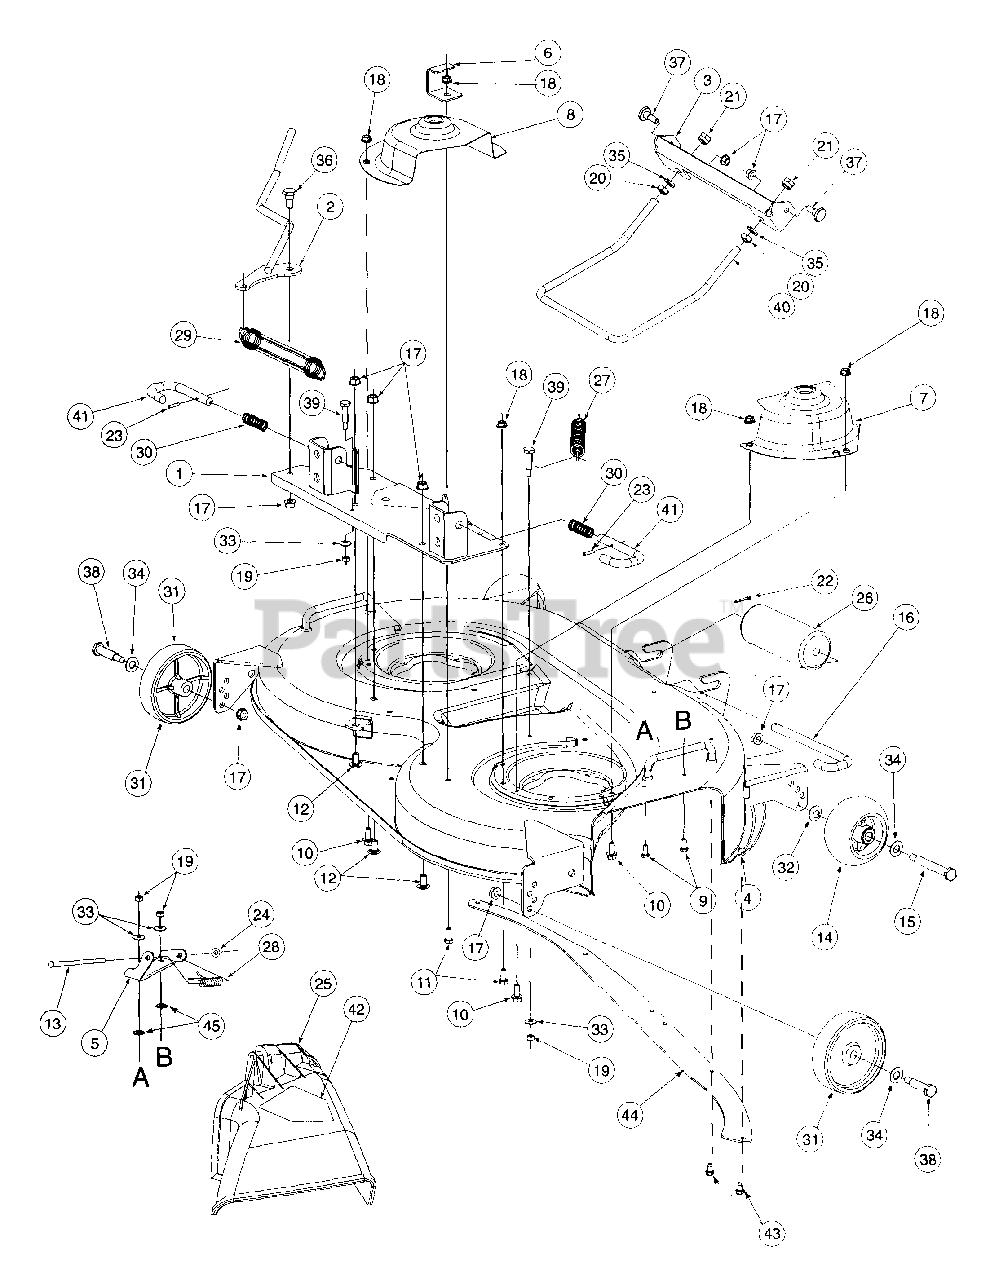 Cub Cadet Parts on the 42